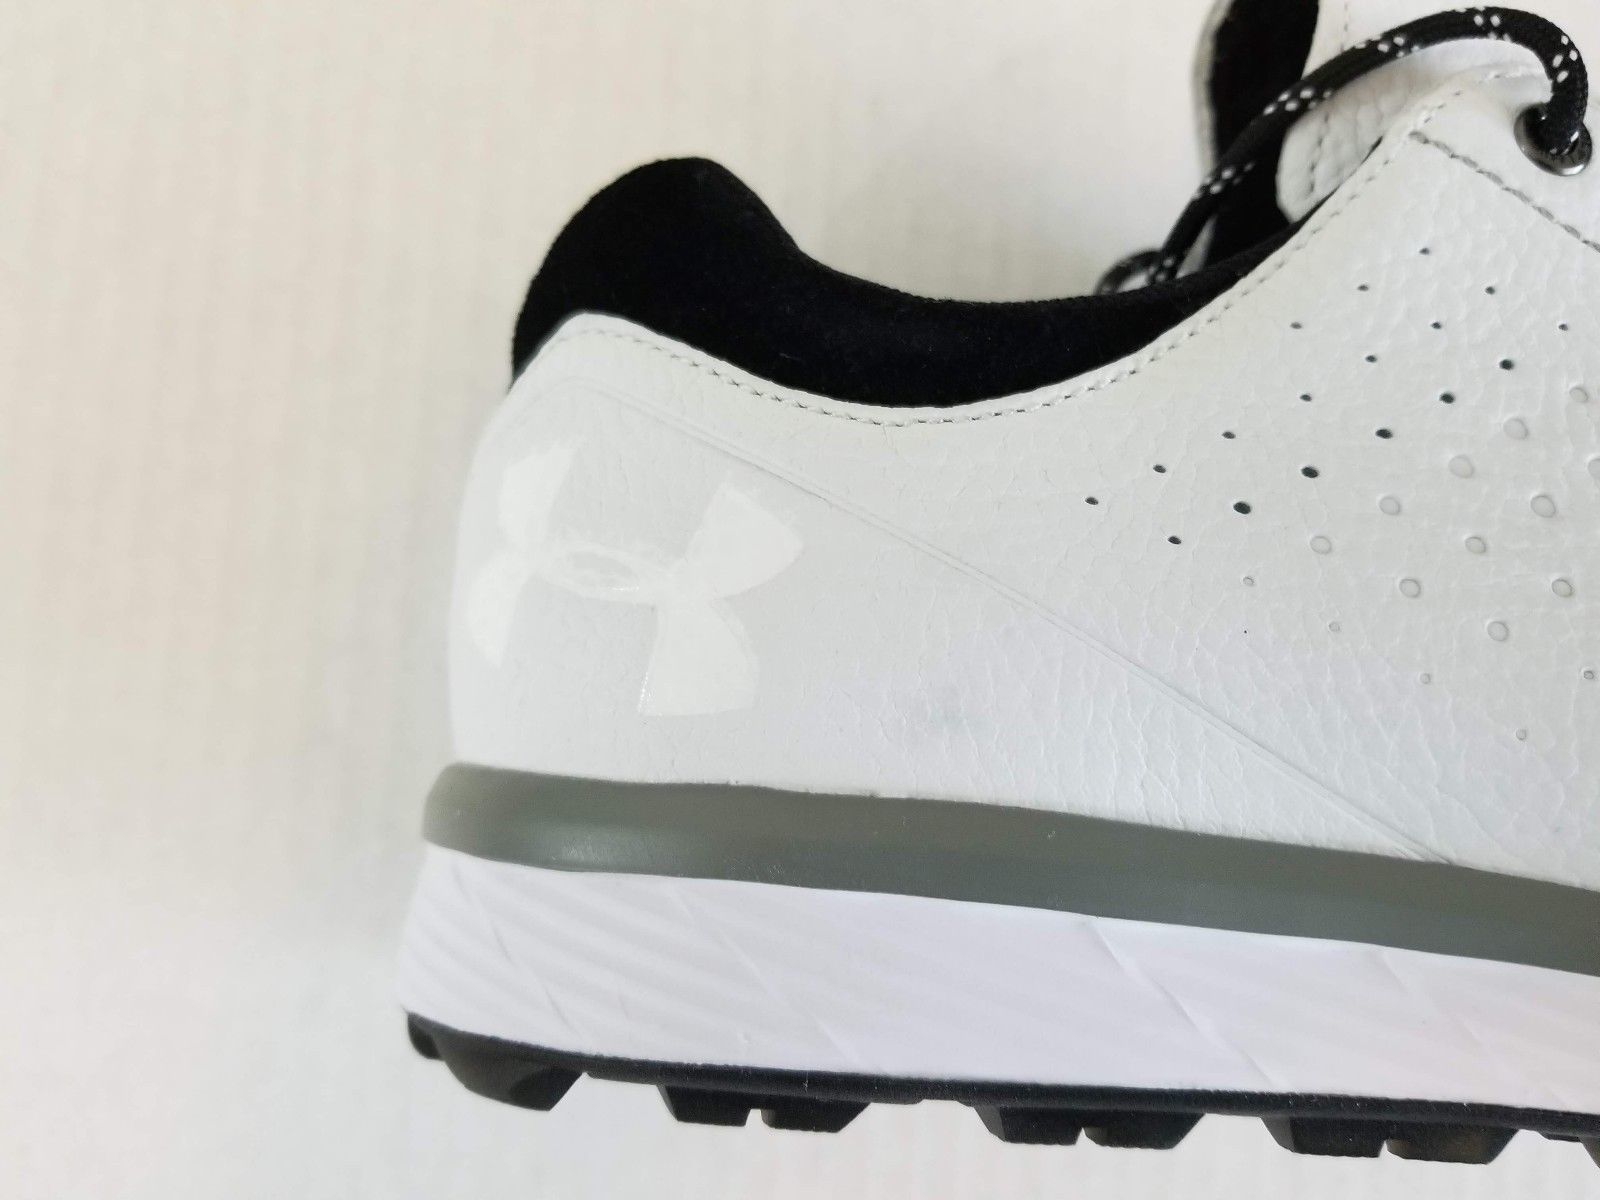 finest selection 5f3fc 411a5 Under Armour Tempo Hybrid Mens Golf Shoes 1270207160 White Black Black Size  9